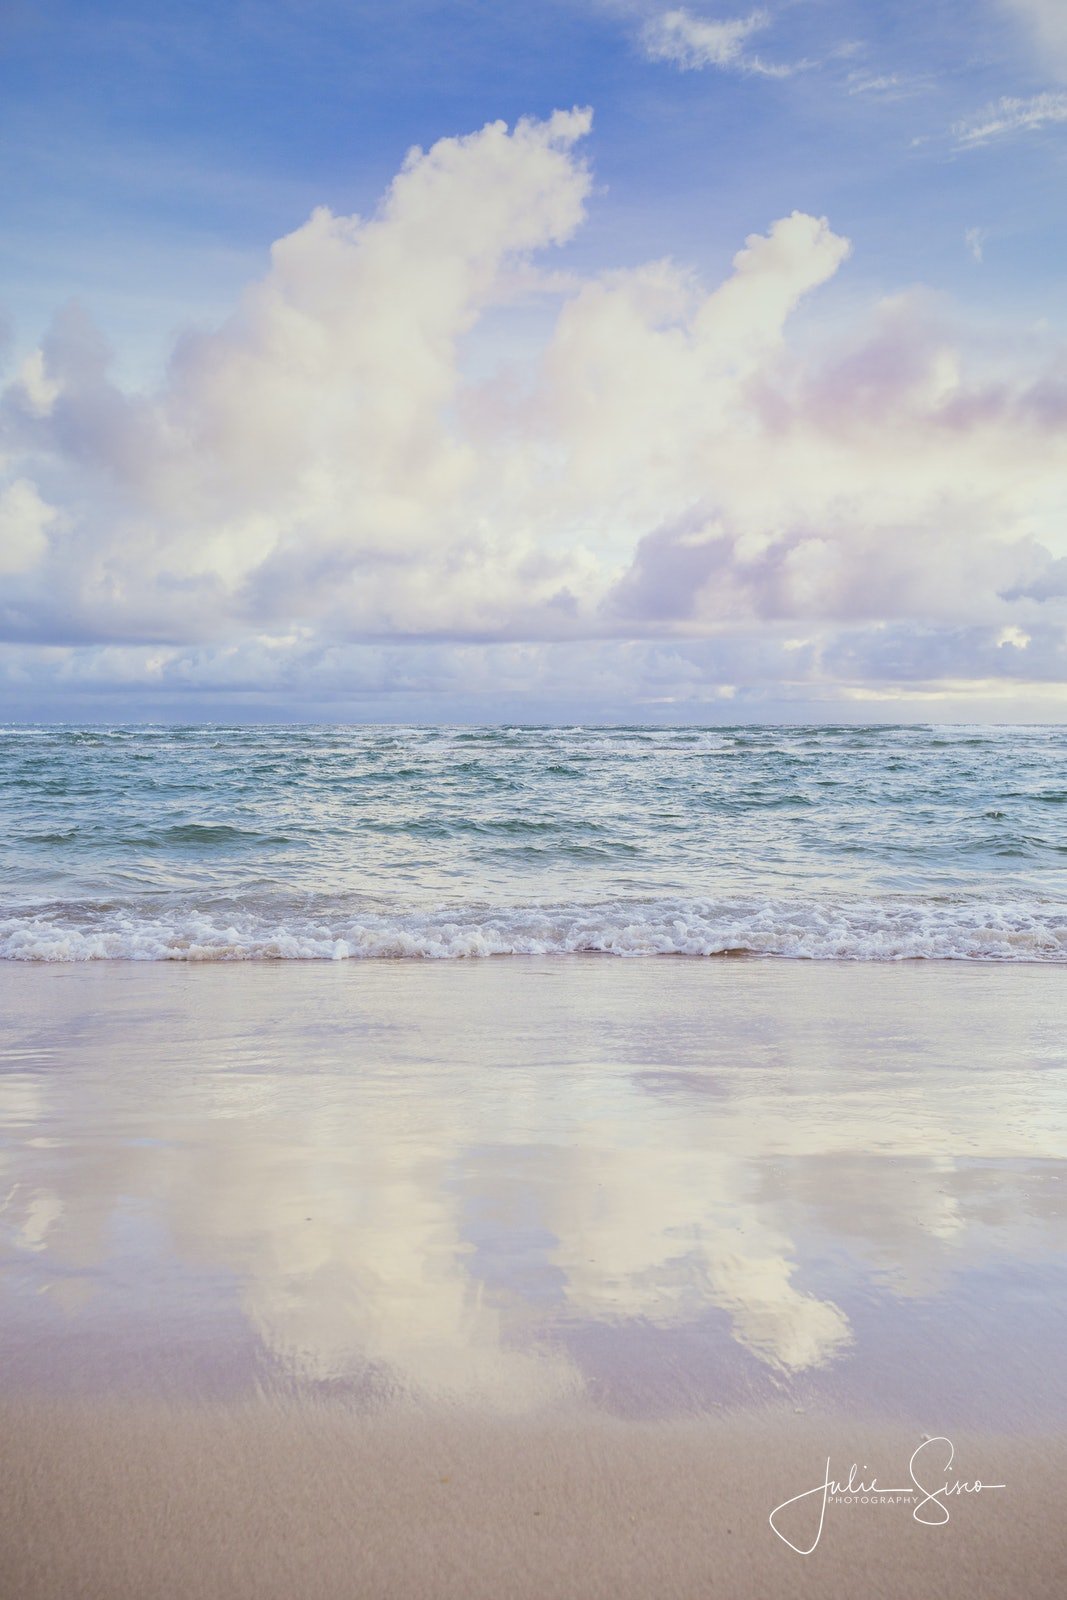 Sky Ocean Sand Flinders entrance sunrise - Snapshots of Straddie. Wall Art Landscape and Seascape Photography by Julie Sisco. Photos from North Stradbroke...